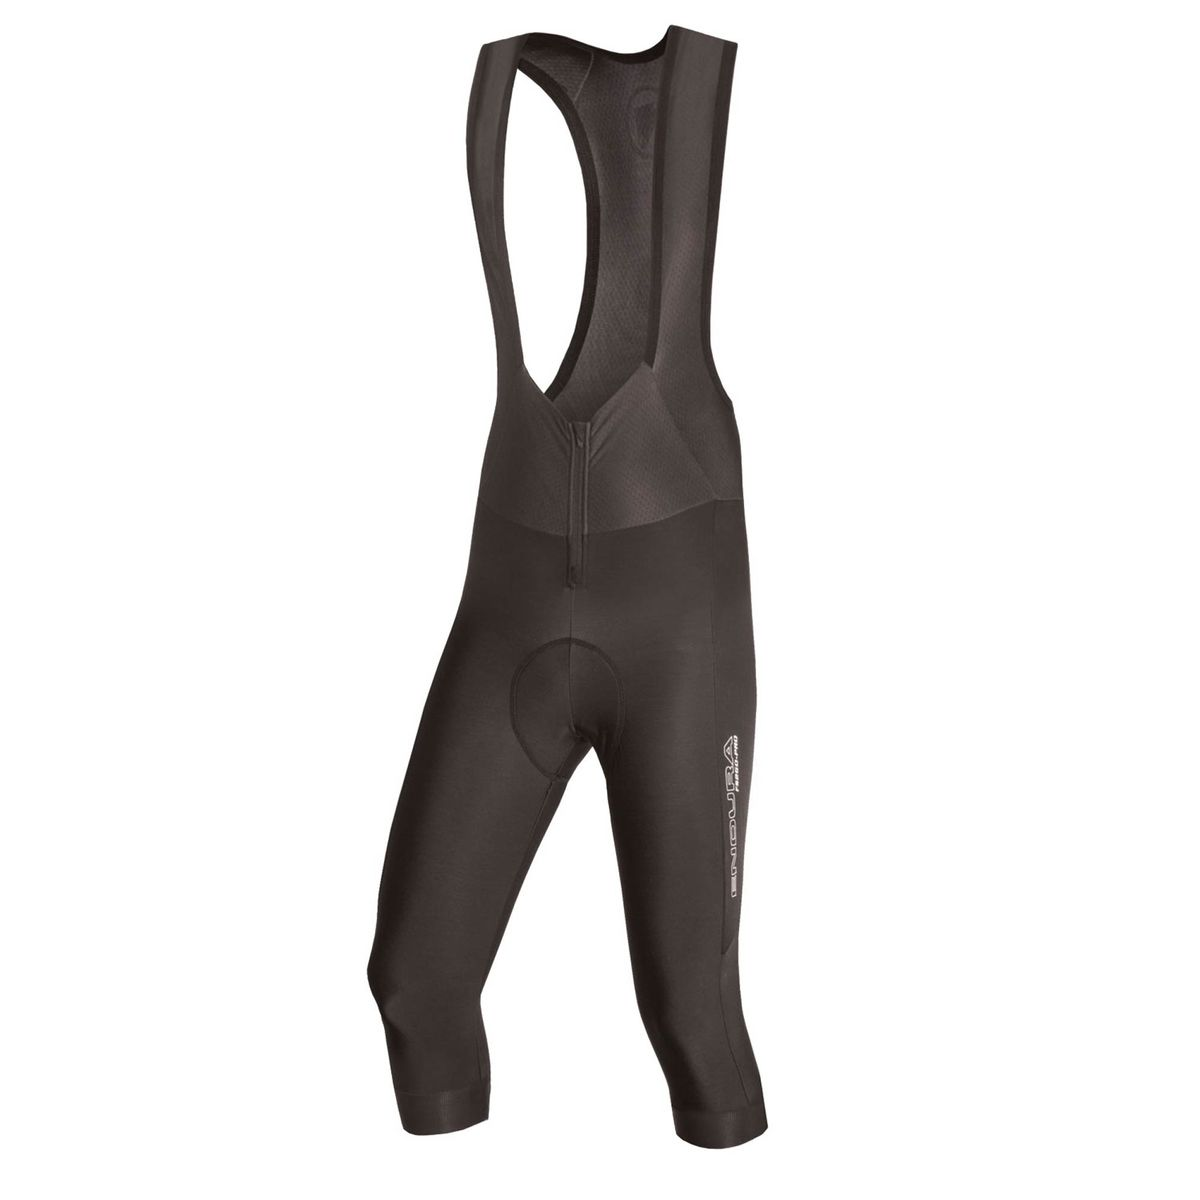 FS260-PRO THERMO BIBKNICKER ¾-length bib tights